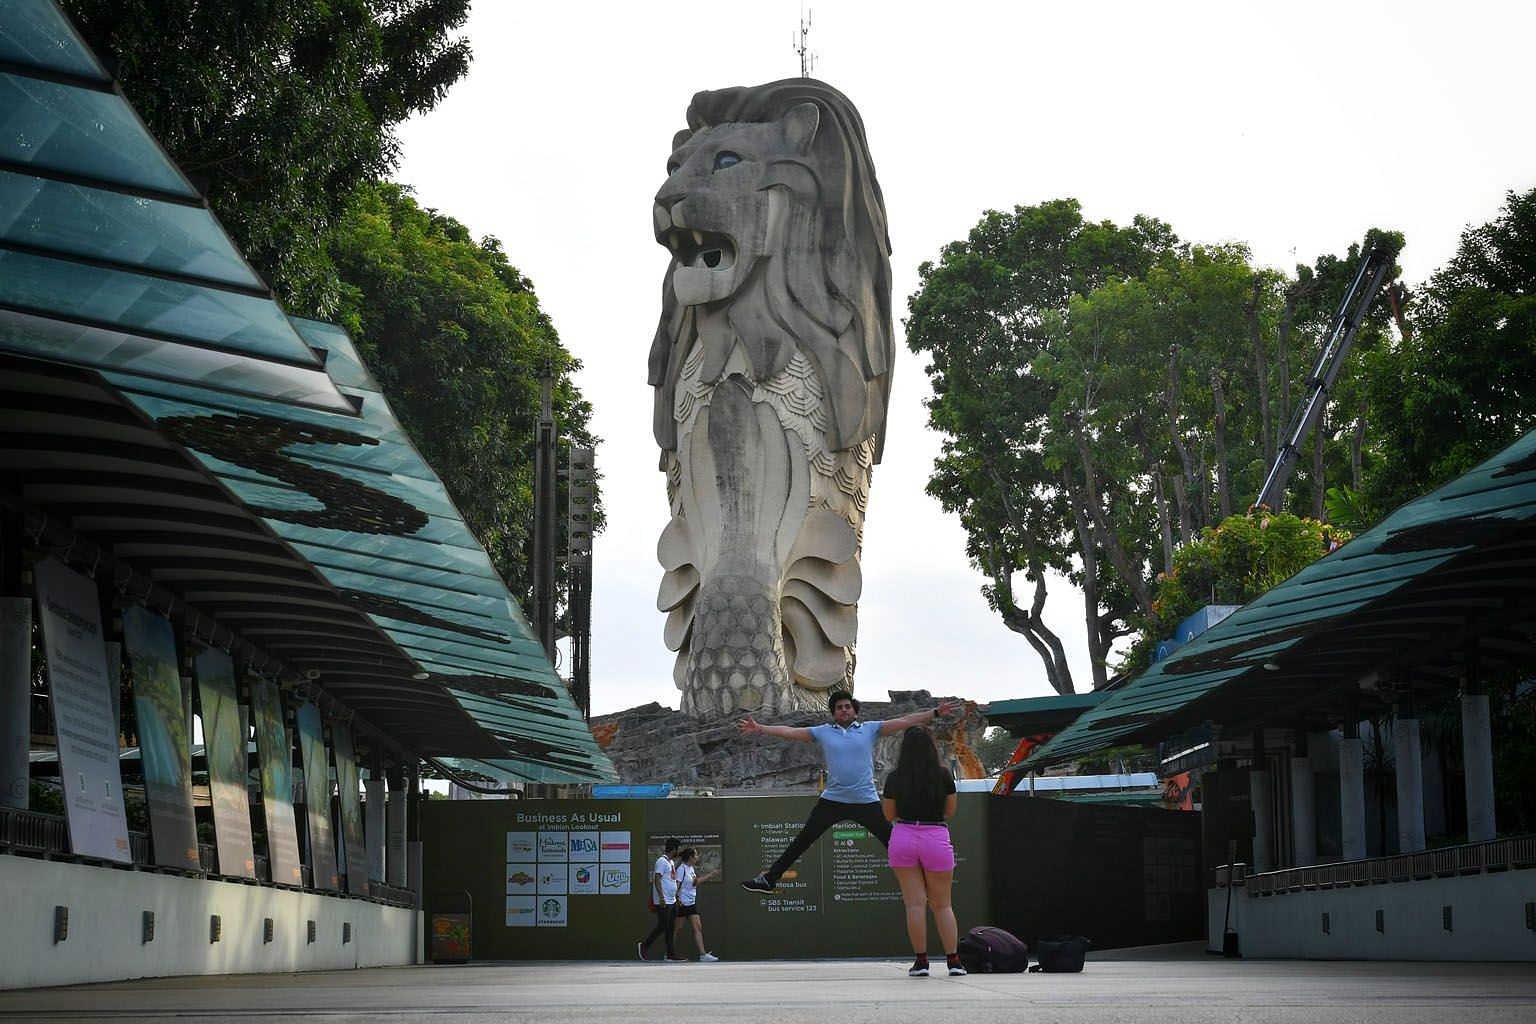 Visitors at Sentosa last month. Commercial properties more severely affected by the Covid-19 outbreak, including hotels, tourist attractions, shops and eateries, will not have to pay any property tax this year. ST PHOTO: CHONG JUN LIANG